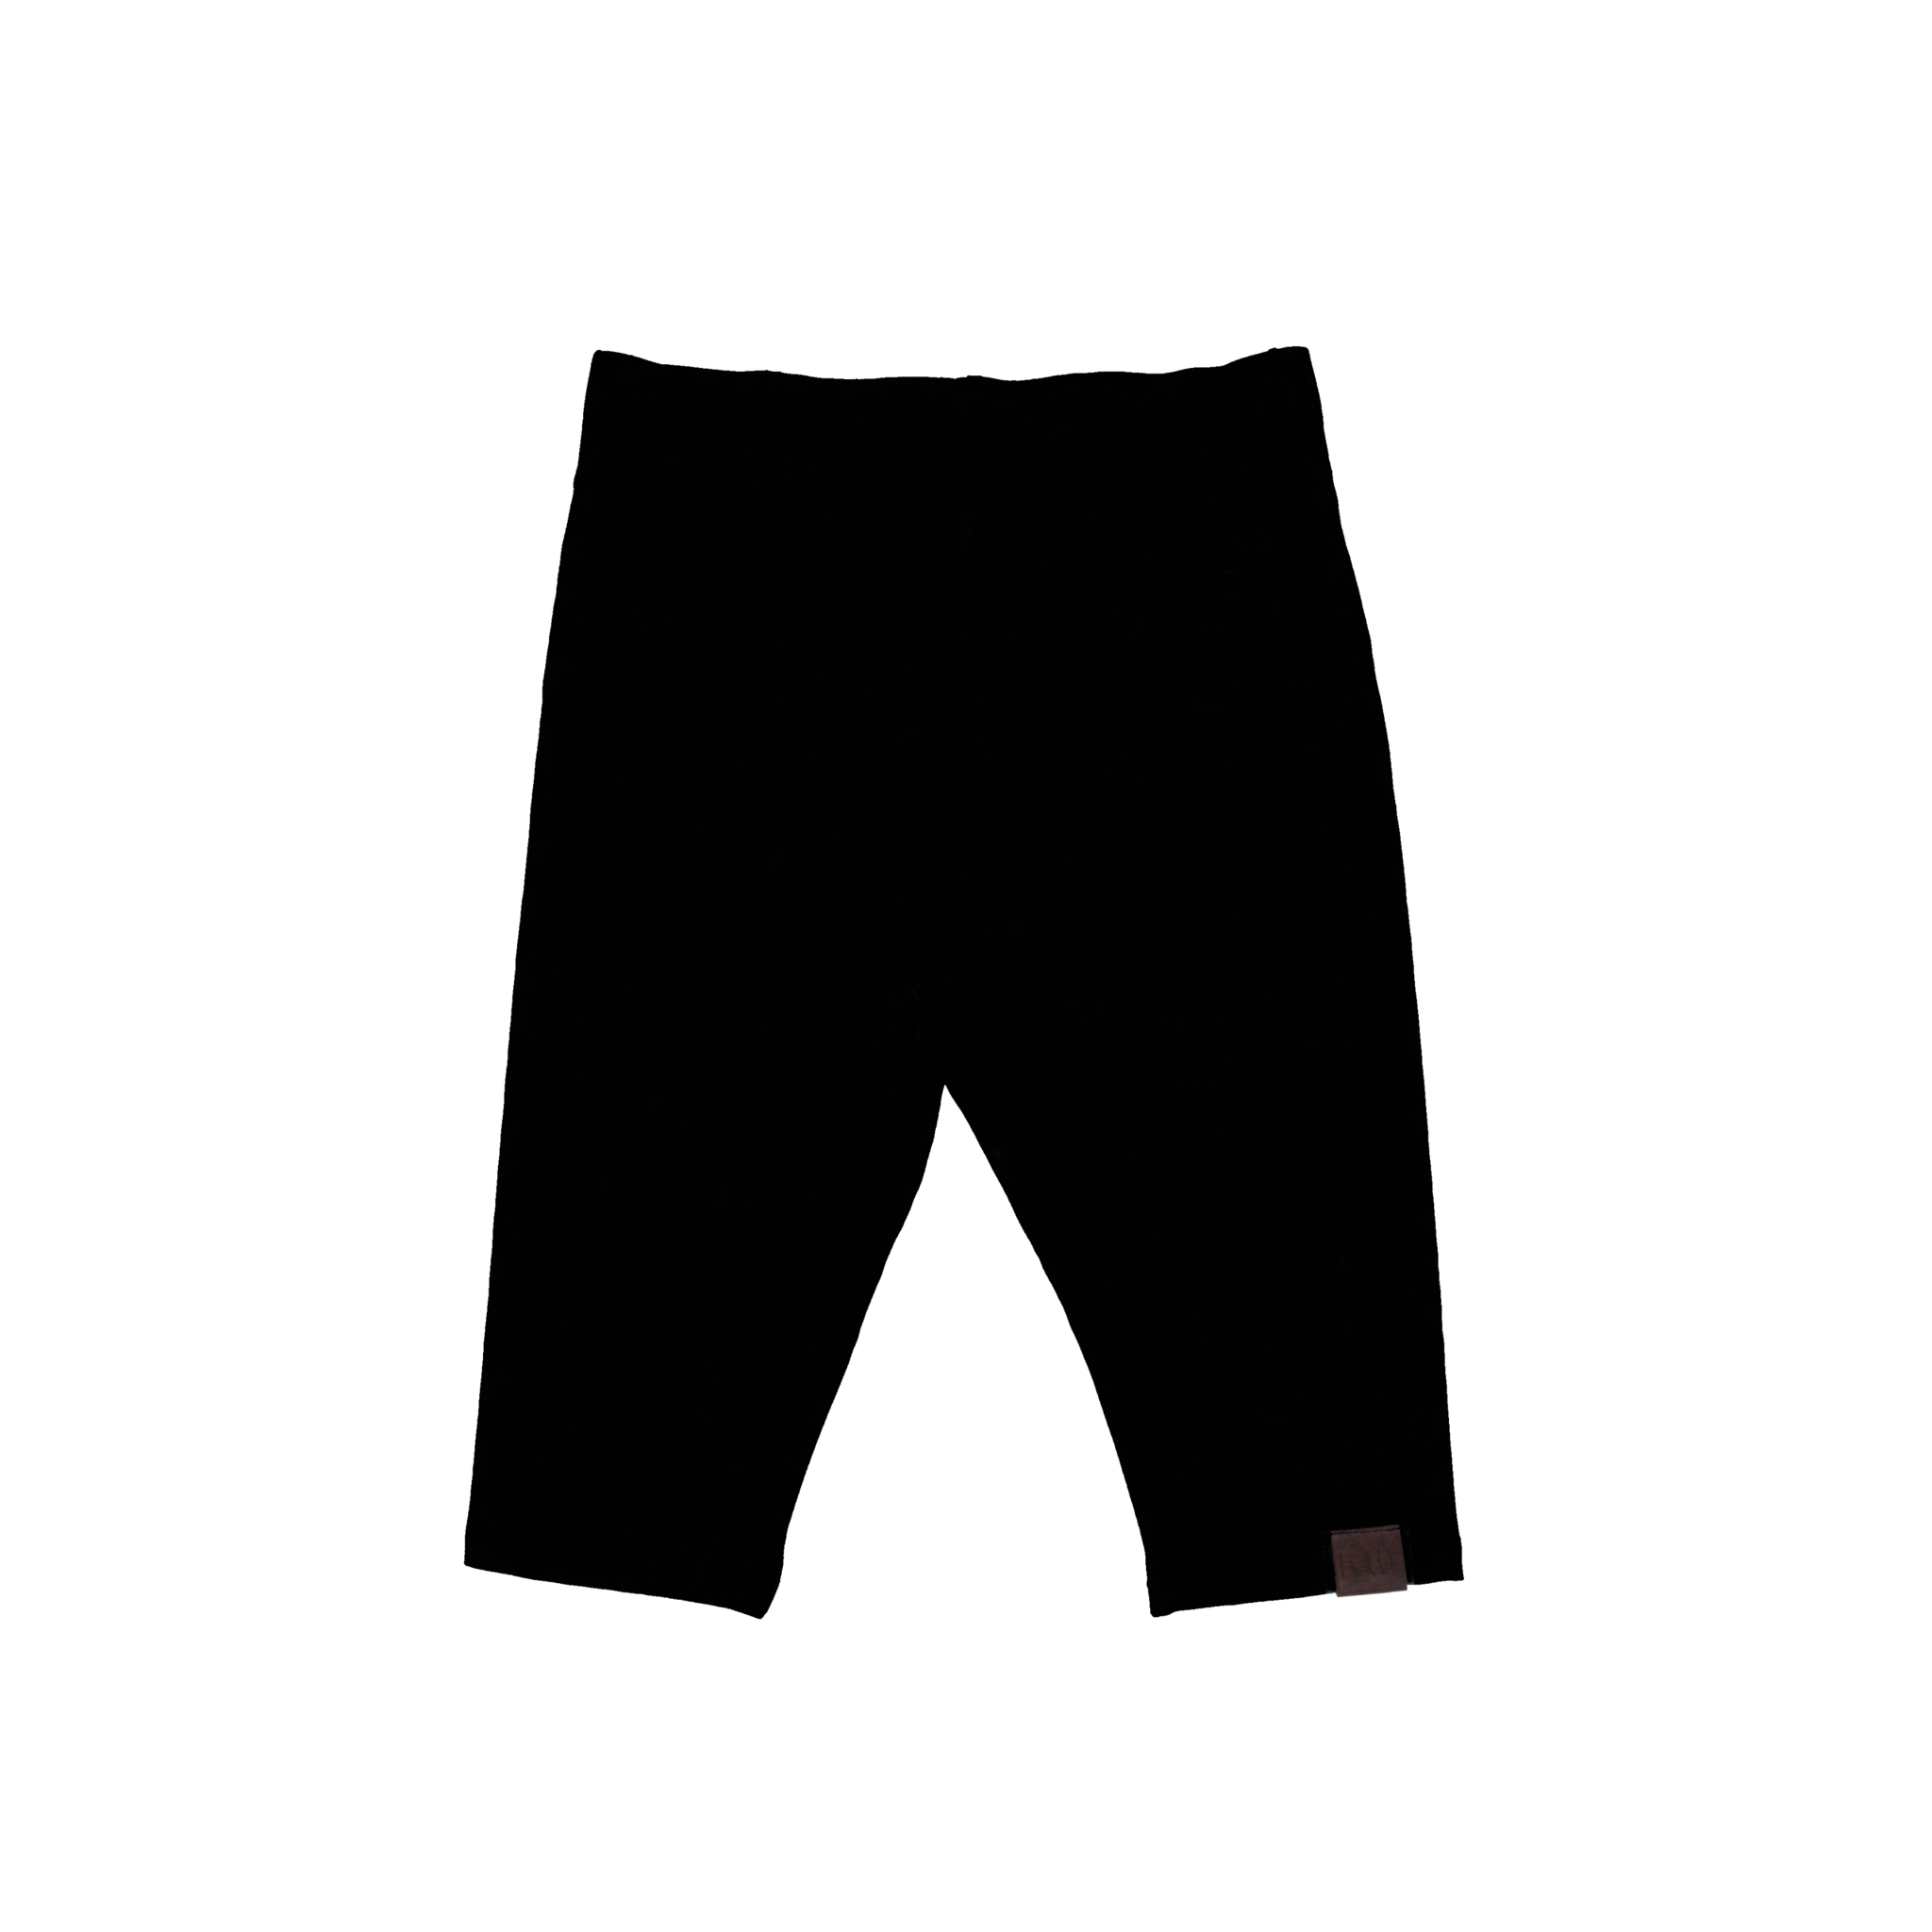 Kiddow BLACK SHORT LEGGING FOR KIDS | LEGGING FOR CHILDREN | KIDDOW